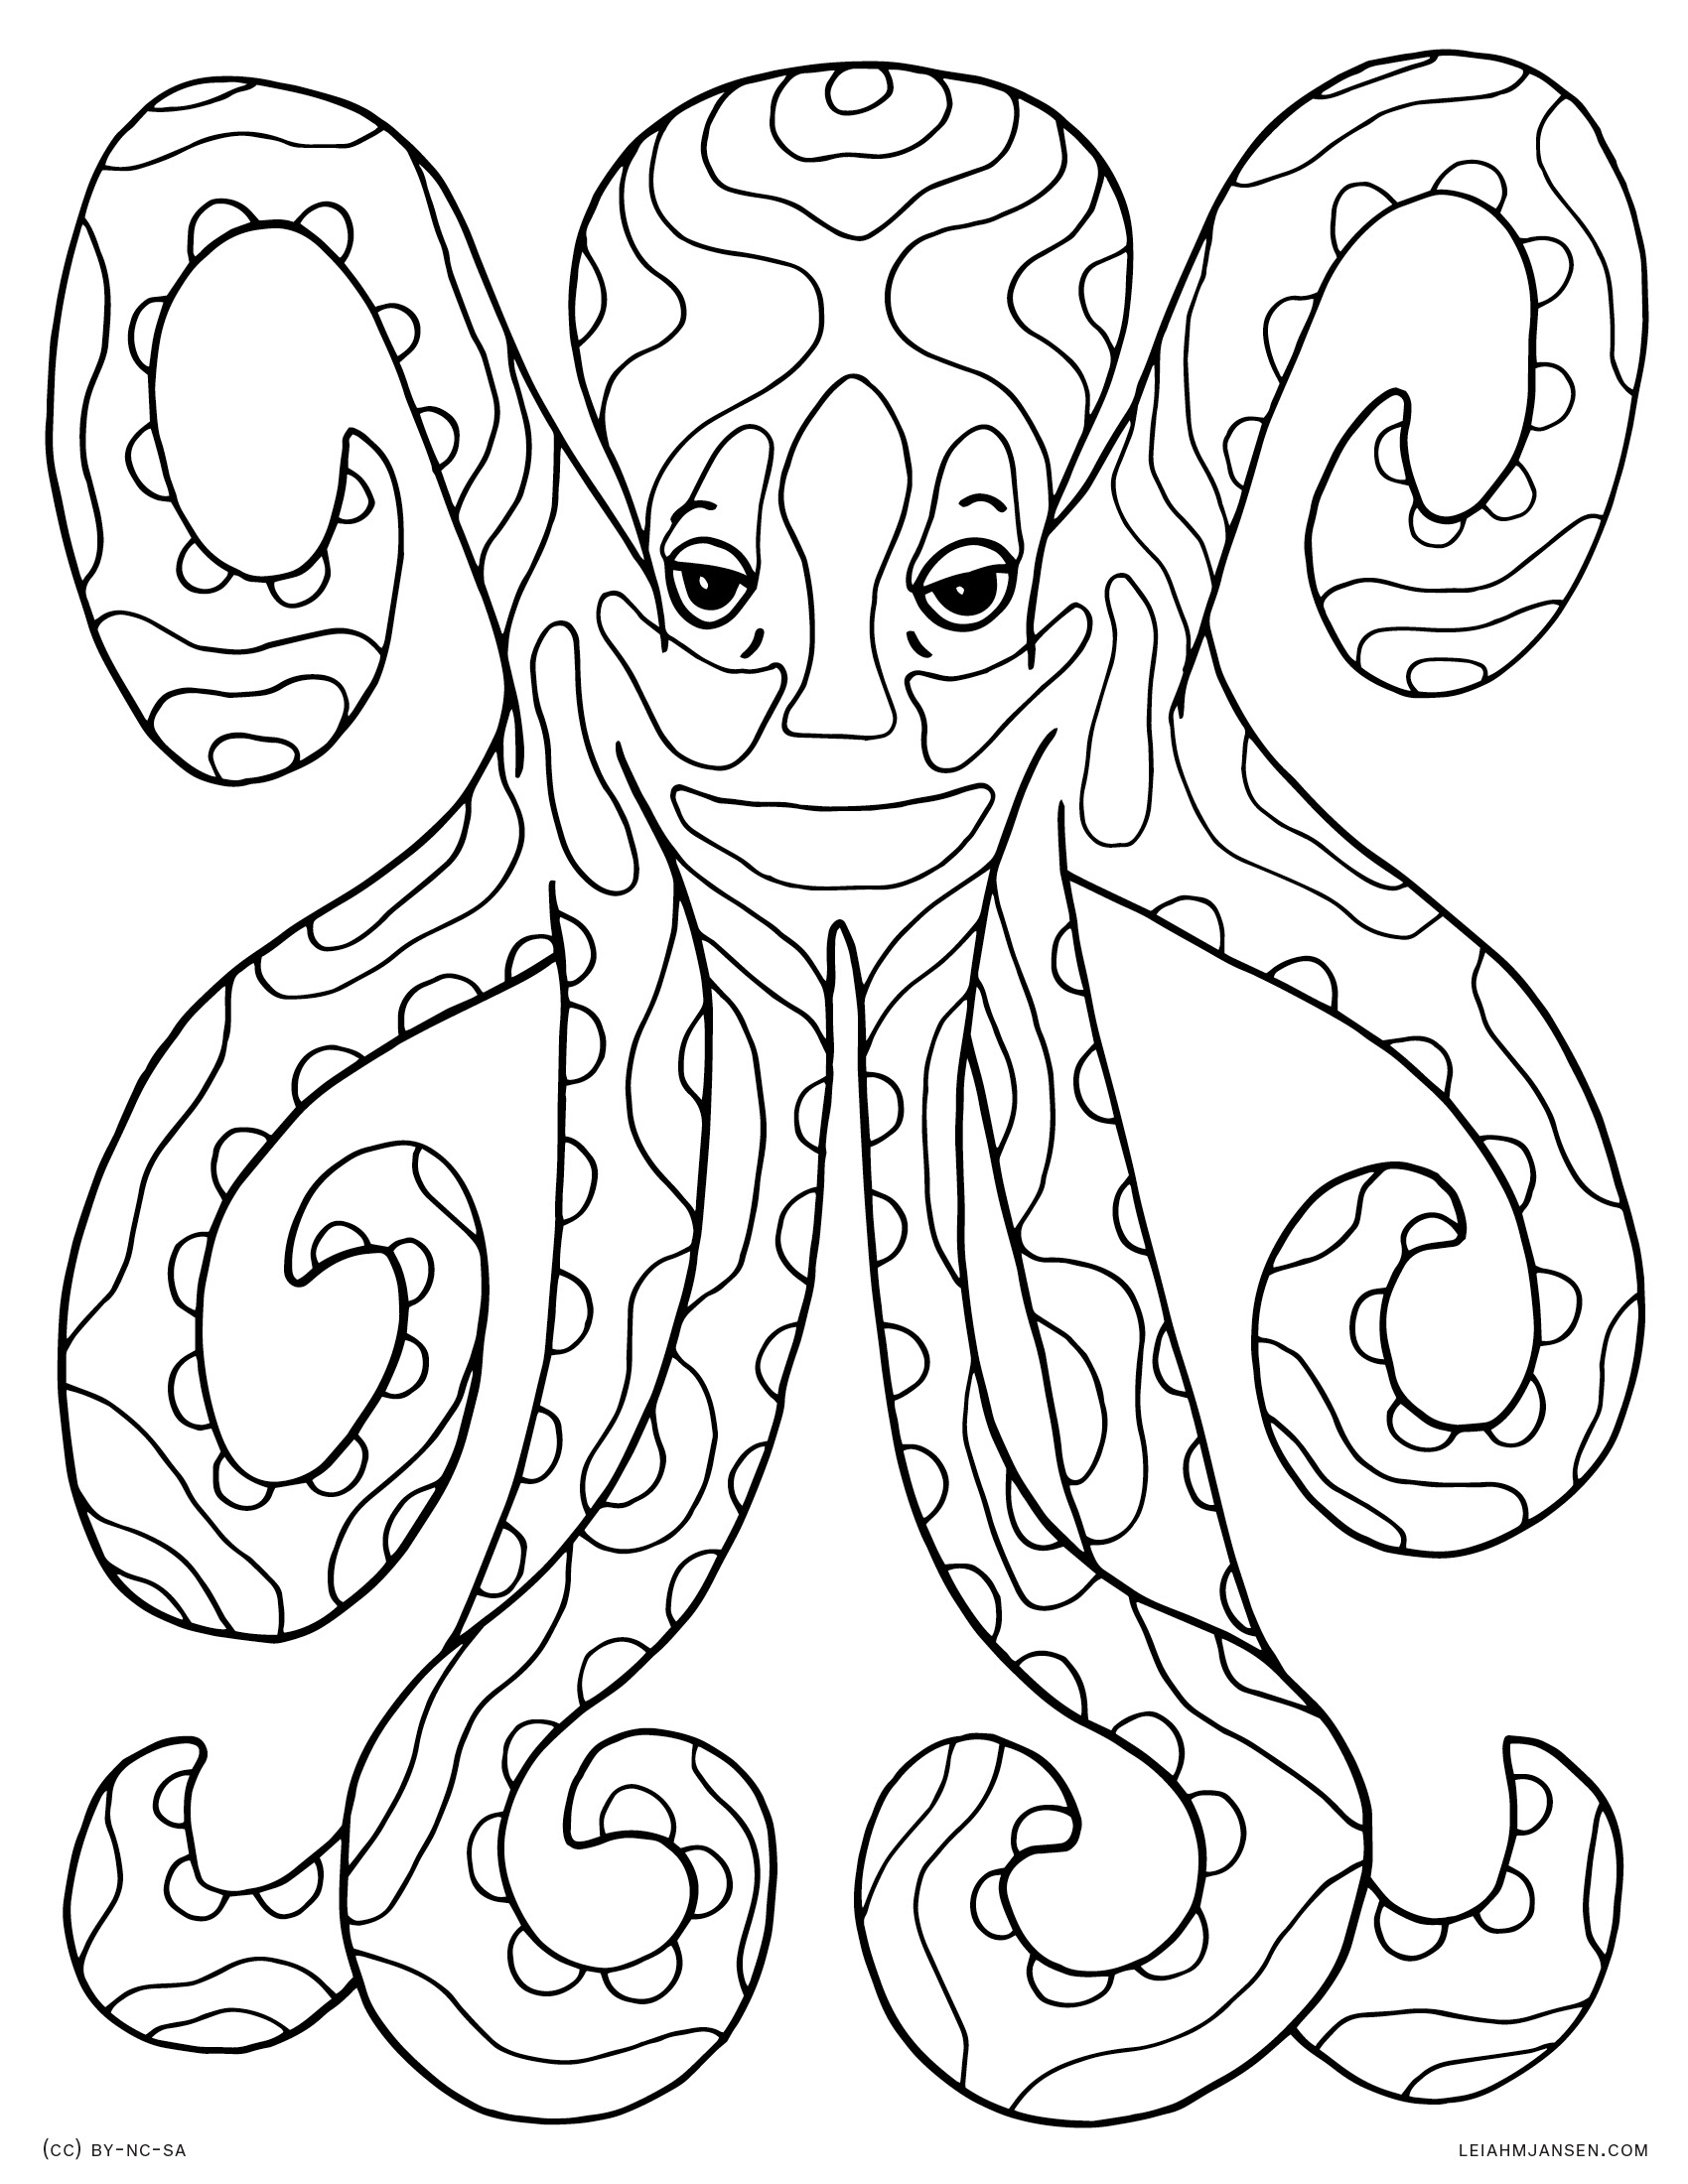 Free Printable Coloring Pages For Kids Coloring Pages